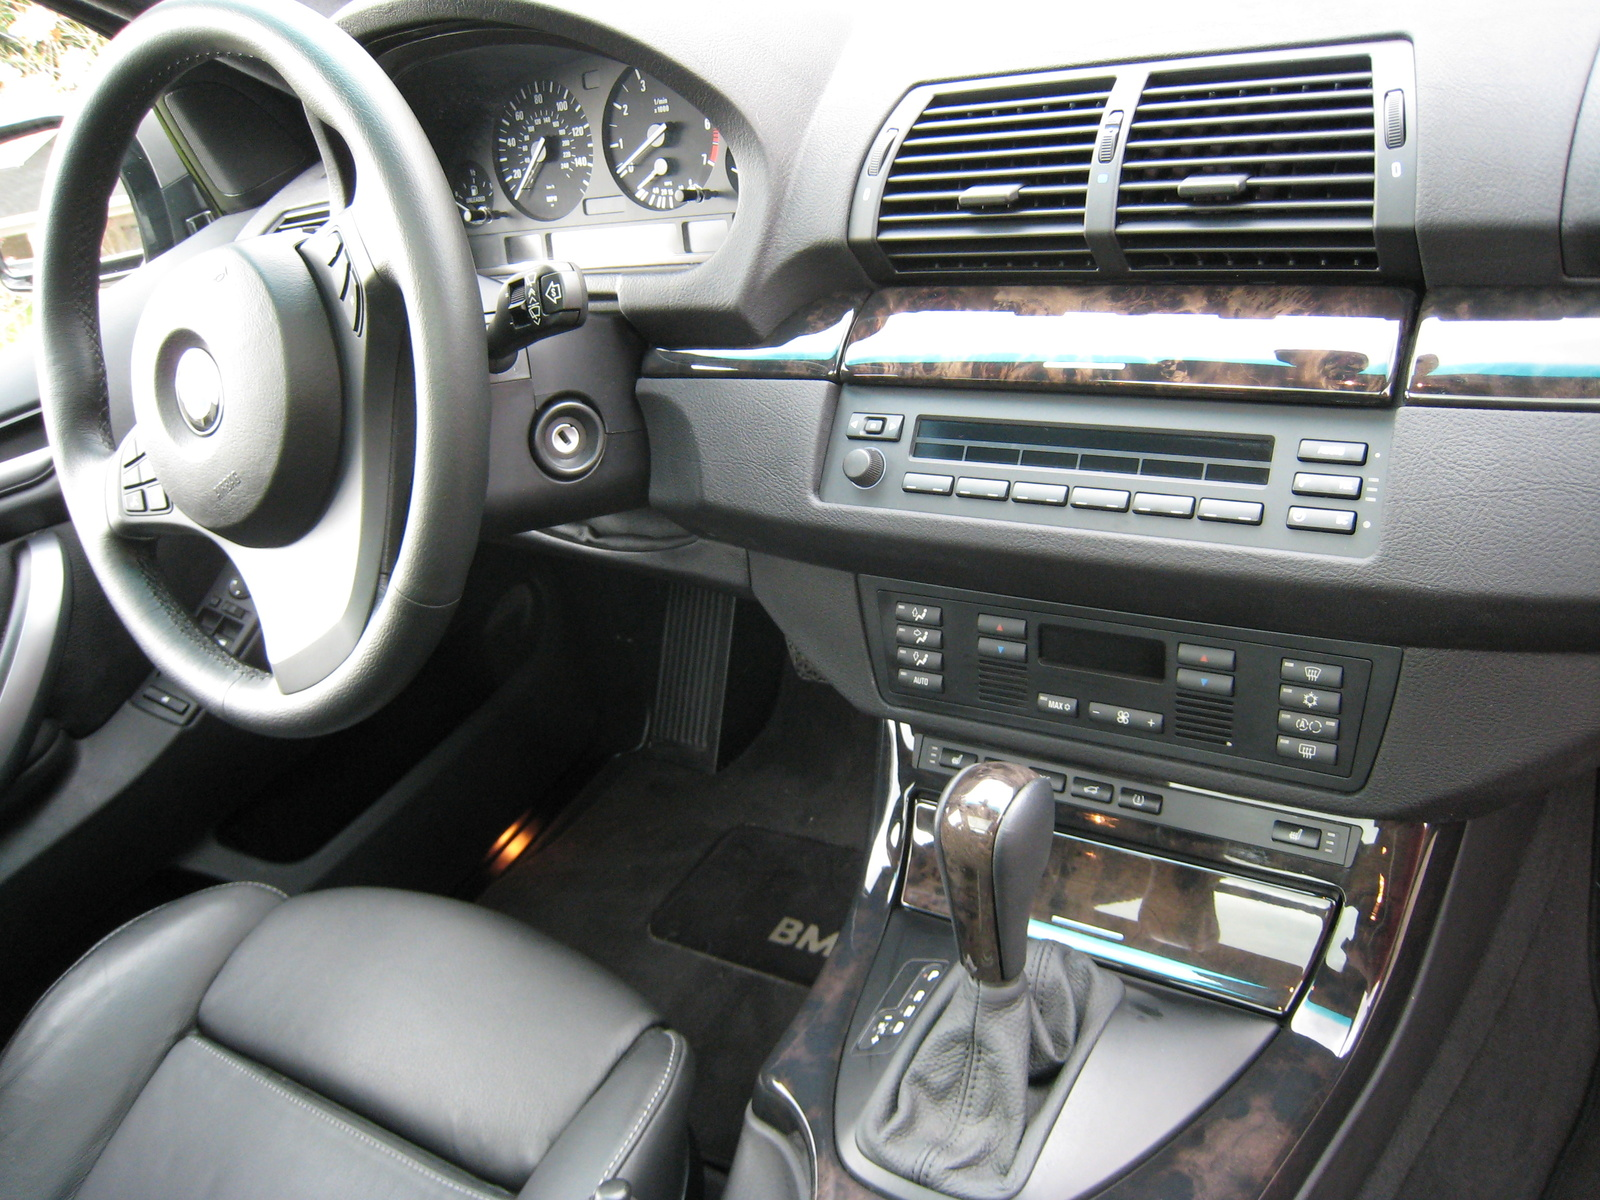 2004 Bmw X5 Interior Pictures Cargurus